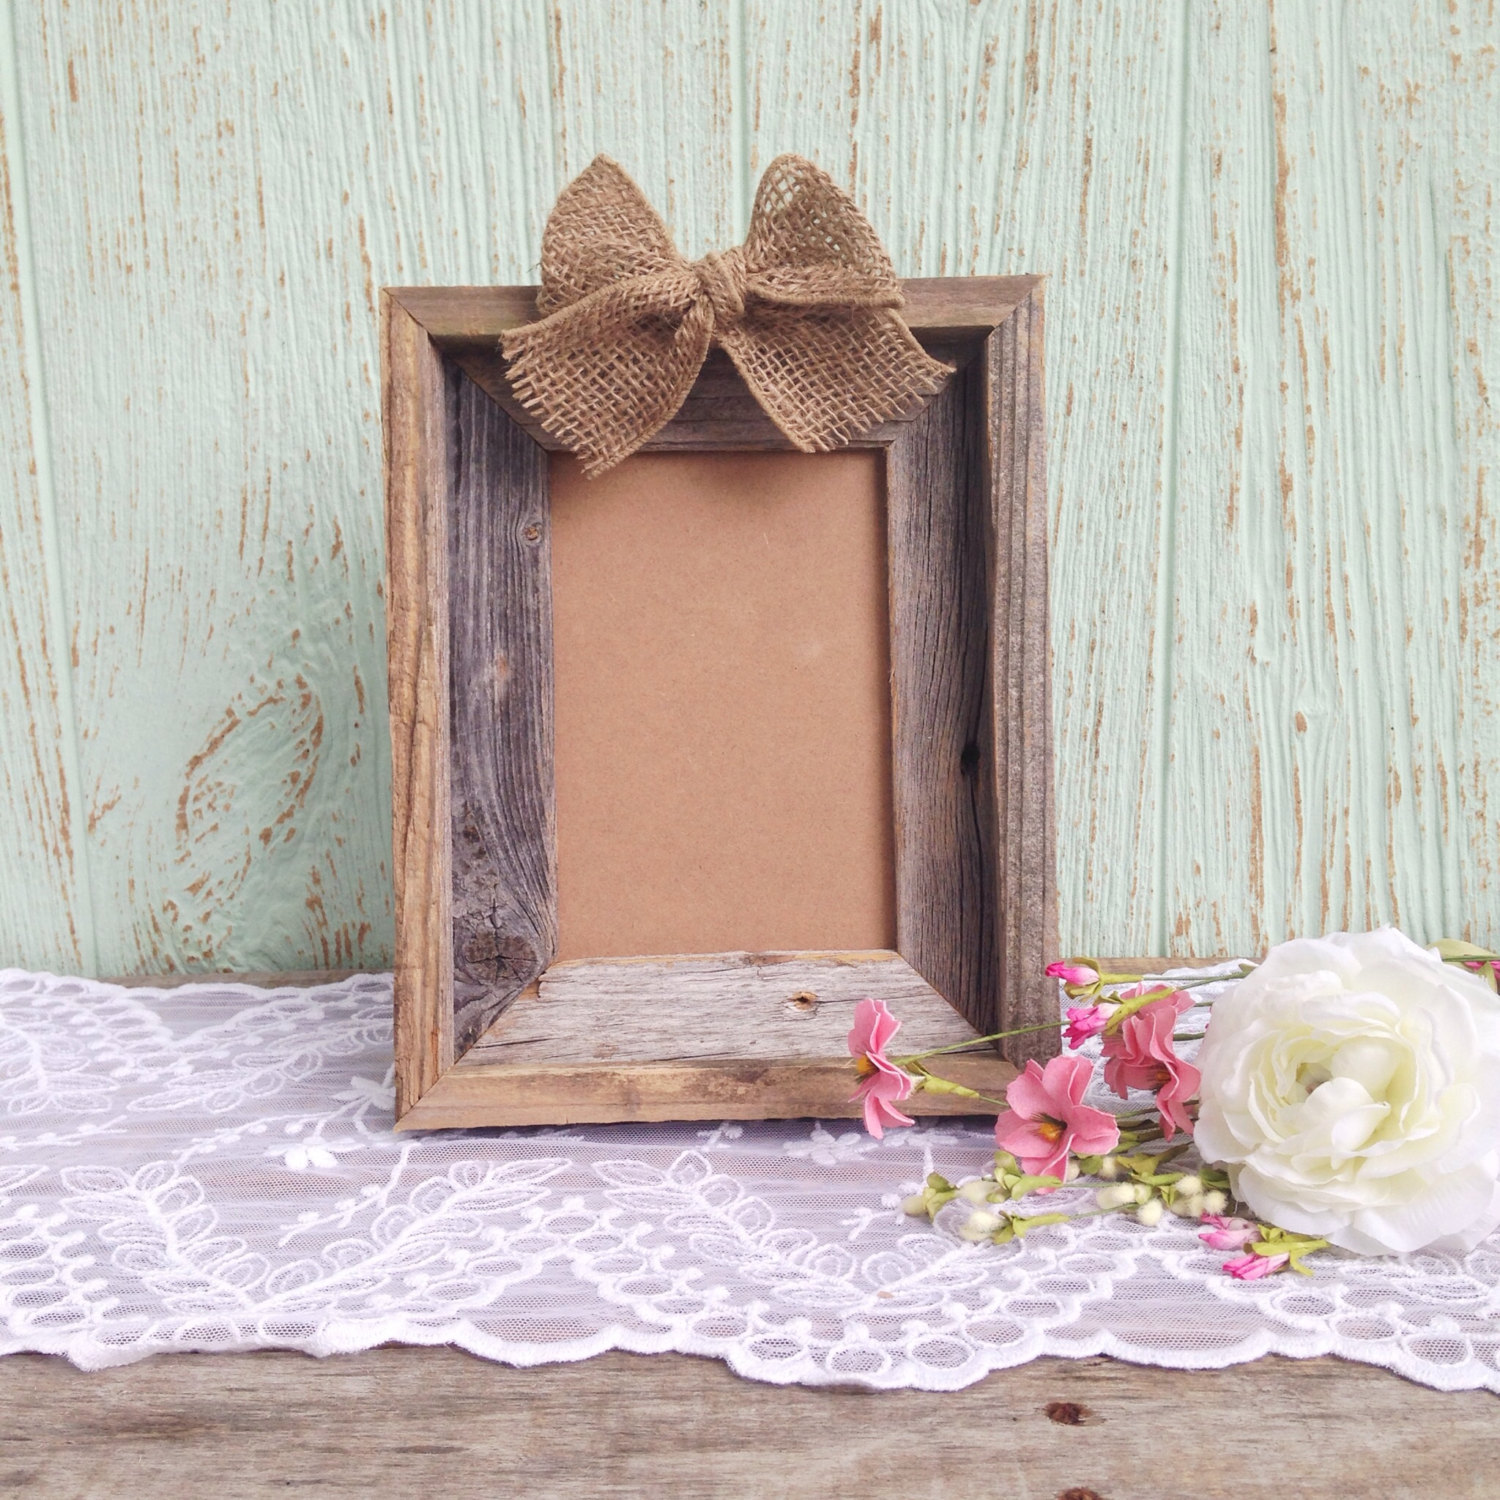 burlap photo frame | 50 Best Burlap Wedding Ideas | via http://emmalinebride.com/decor/burlap-wedding-ideas/